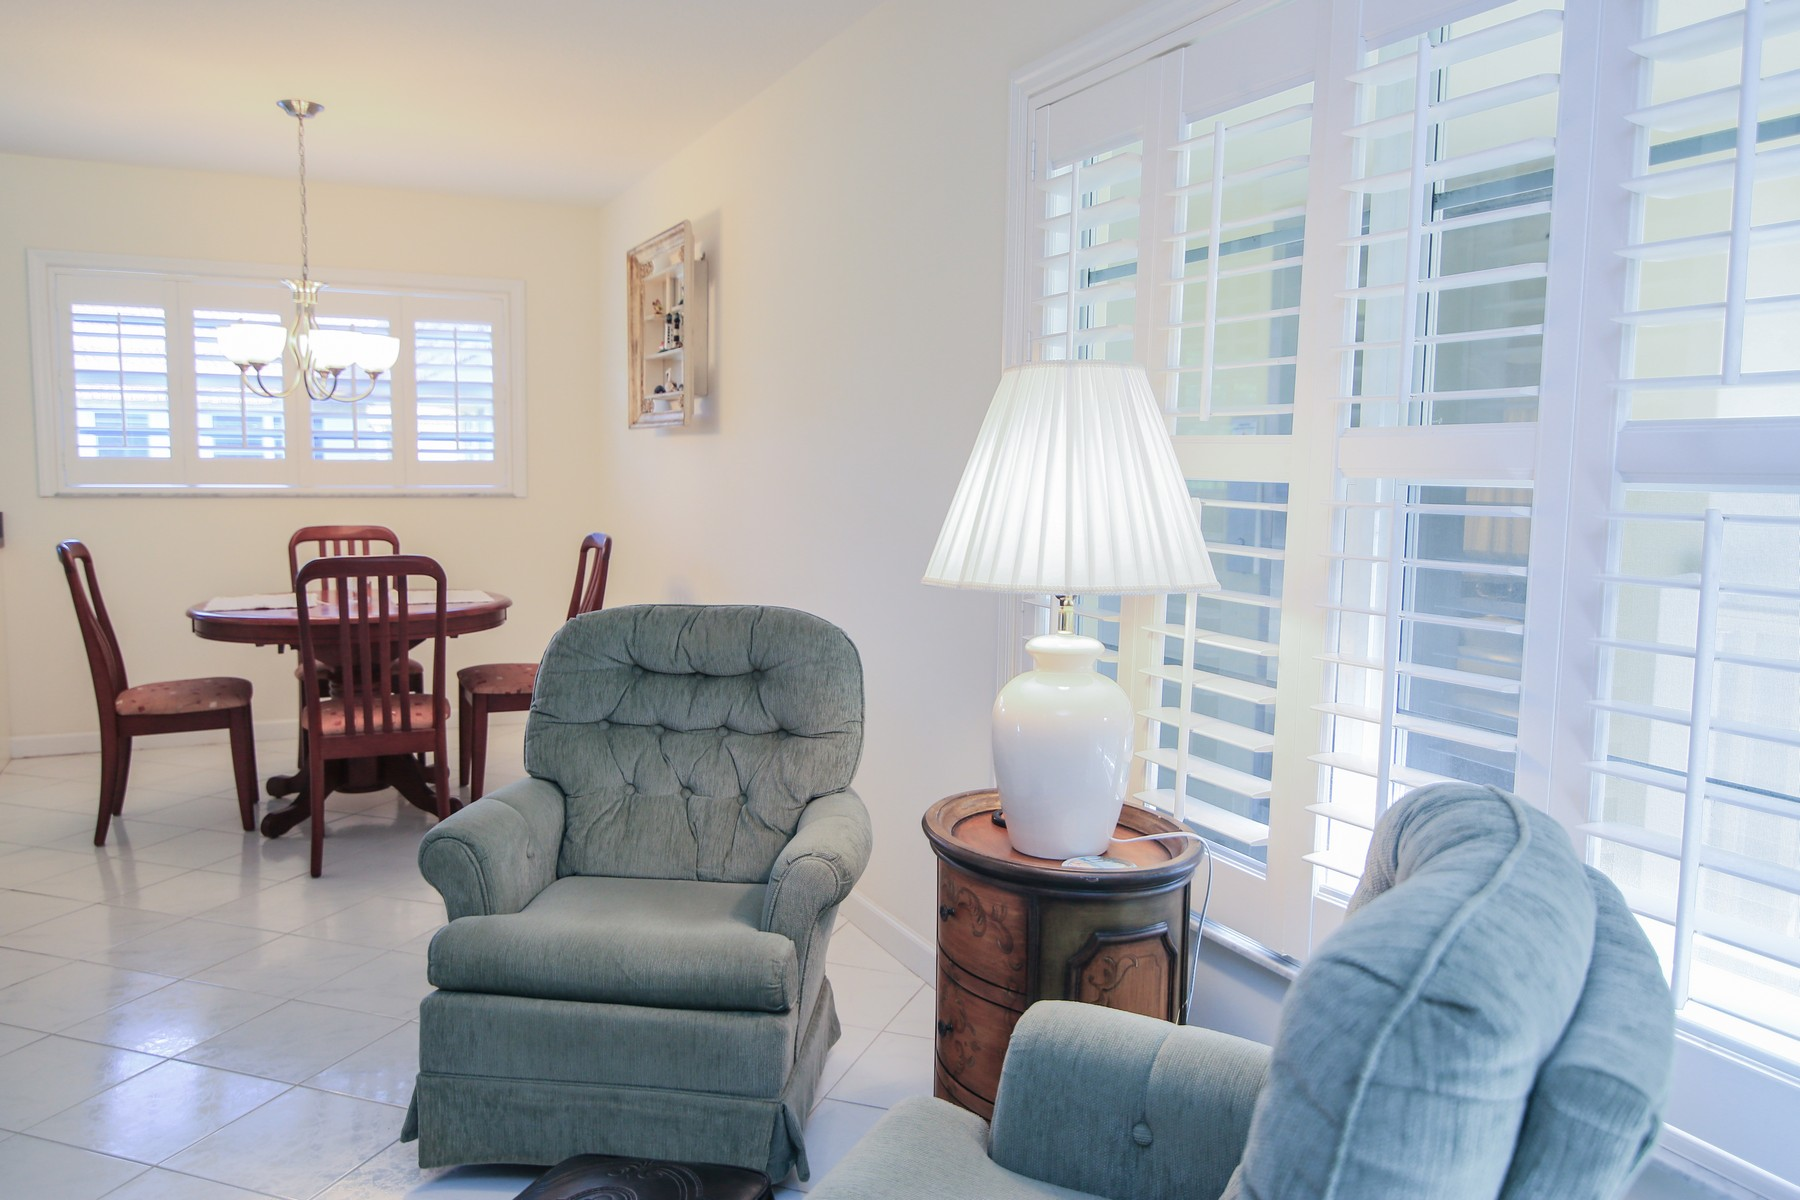 Additional photo for property listing at Oceanside Condo 5400 Highway A1A, #B26 Indian River Shores, Florida 32963 United States